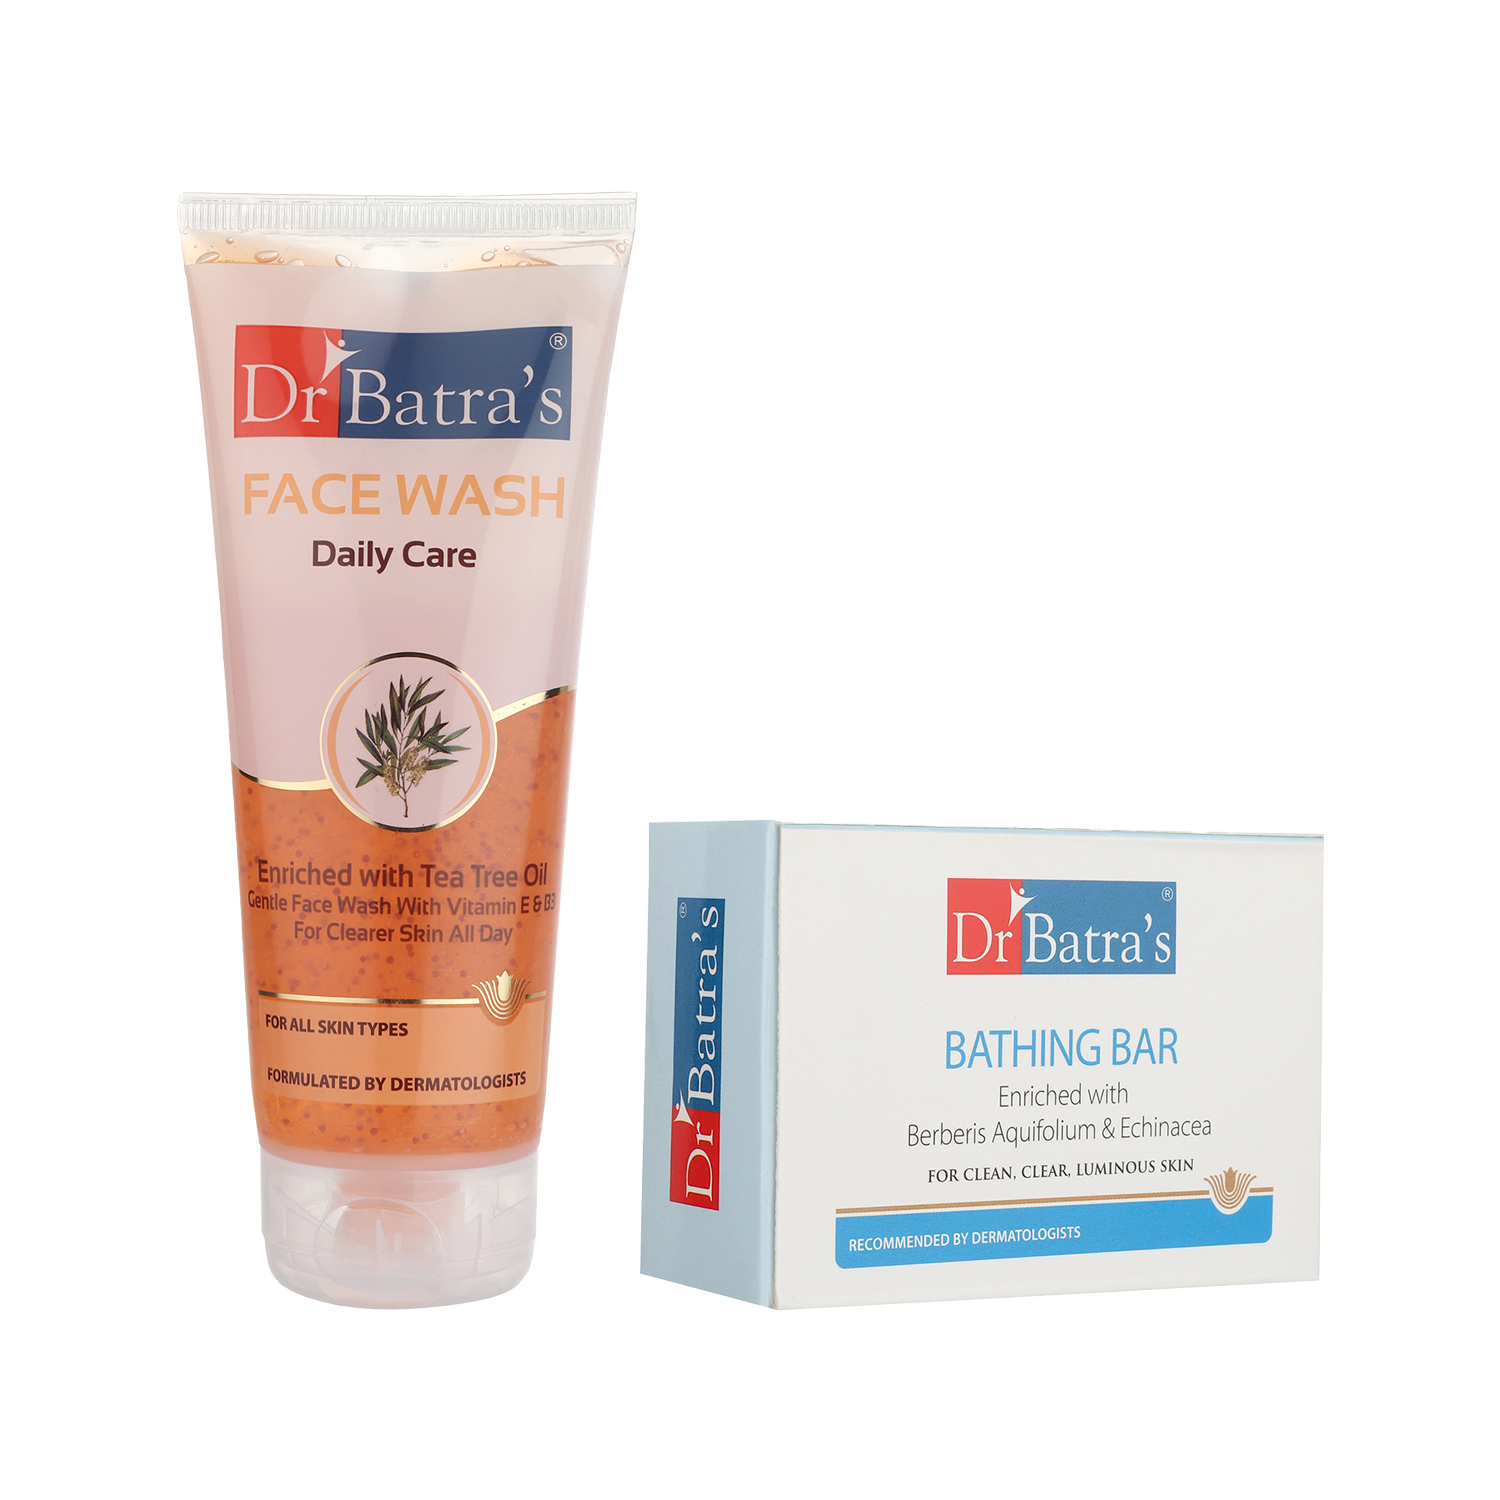 Dr Batra's | Dr Batra's Daily Care Face Wash 200 gm and Bathing Bar - 125 gm (Pack of 2 for Men and Women)